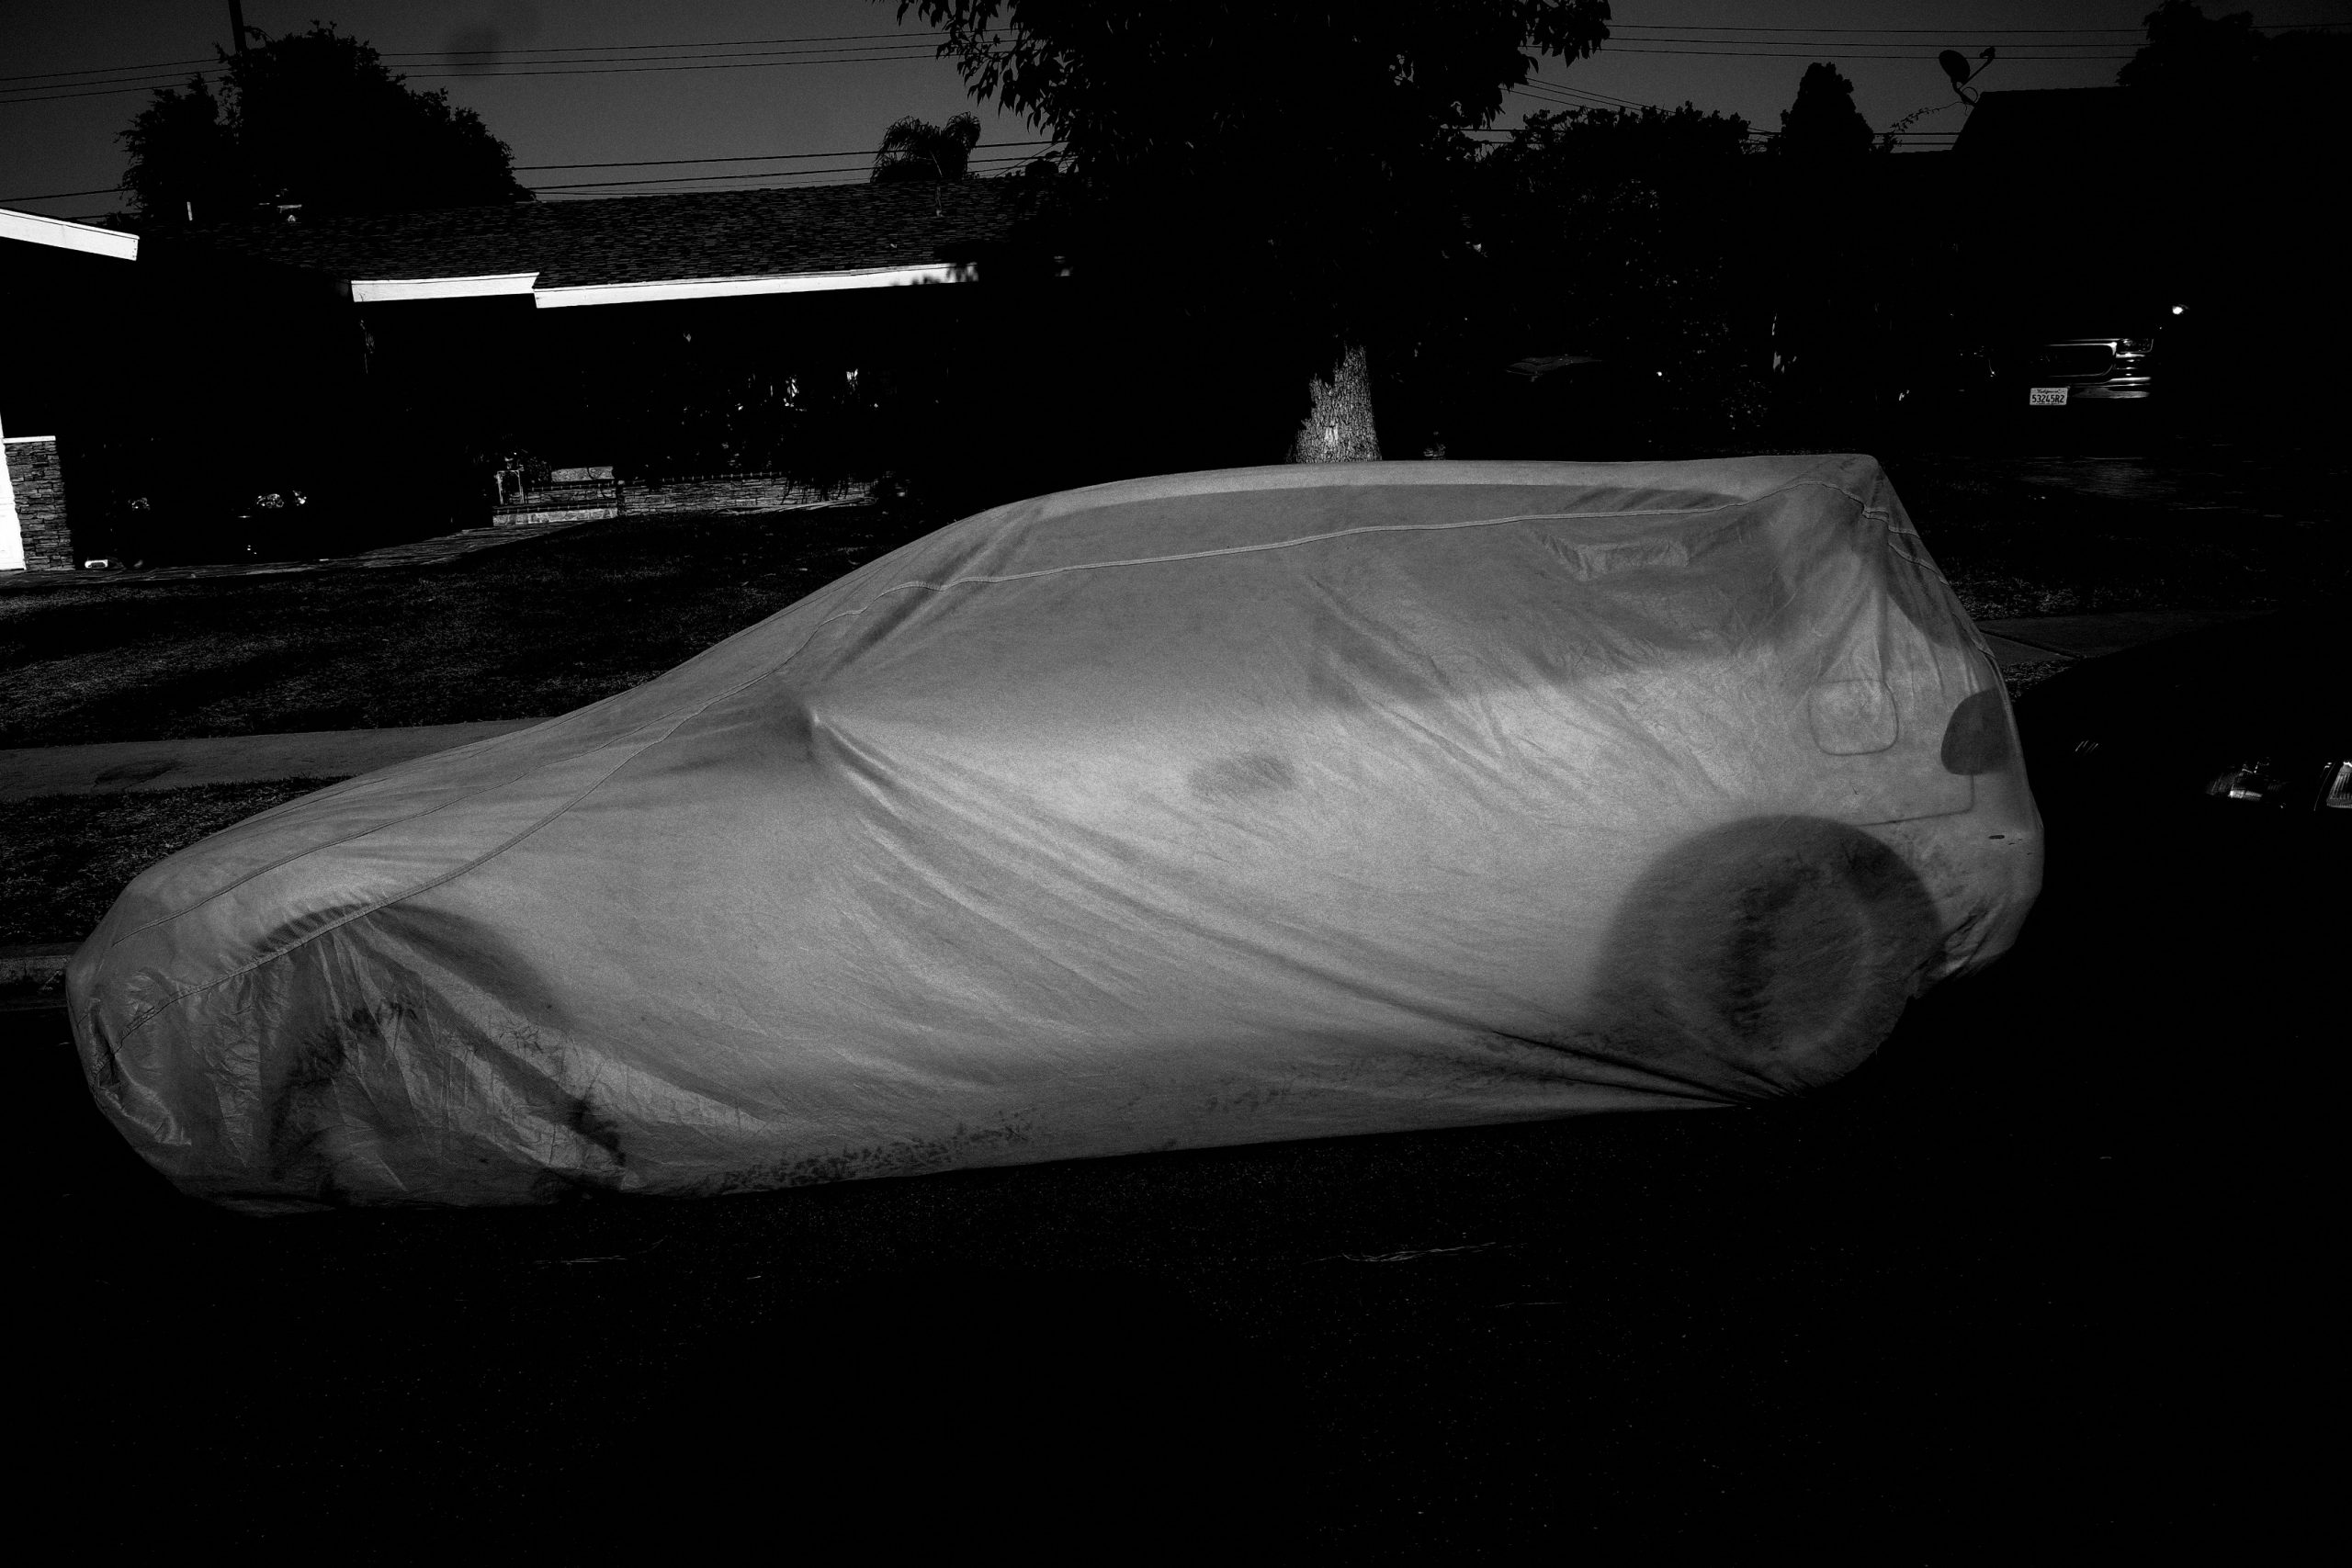 ghost car black and white urban landscape